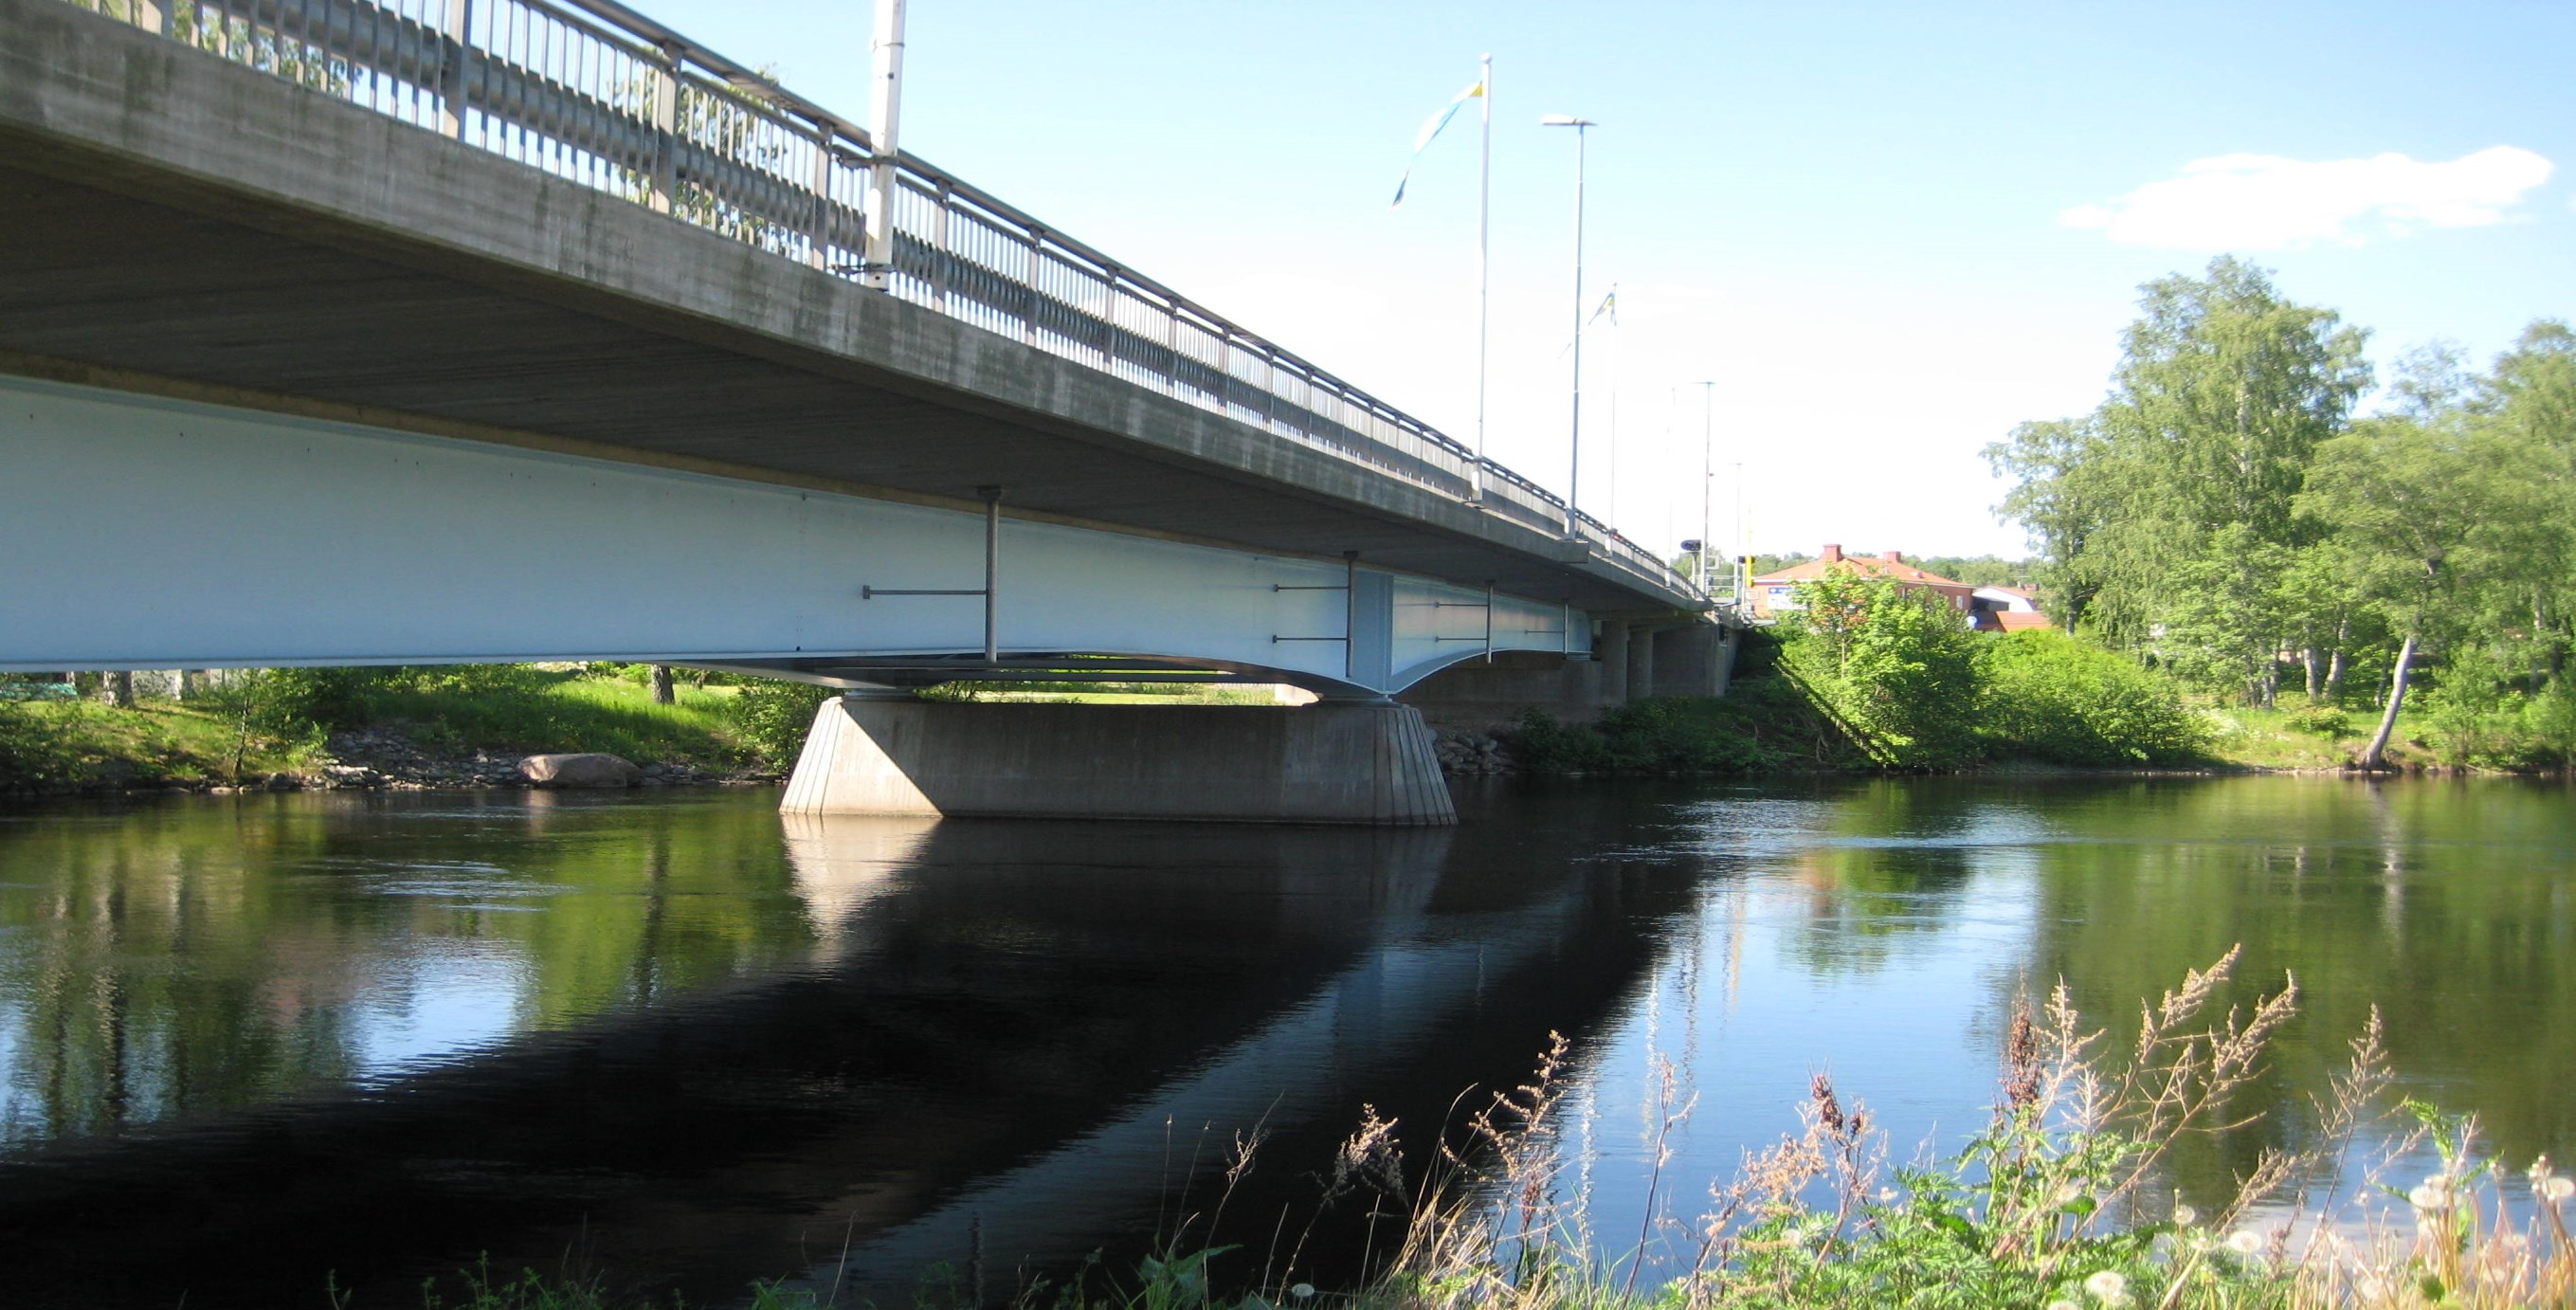 Modern steel bridges